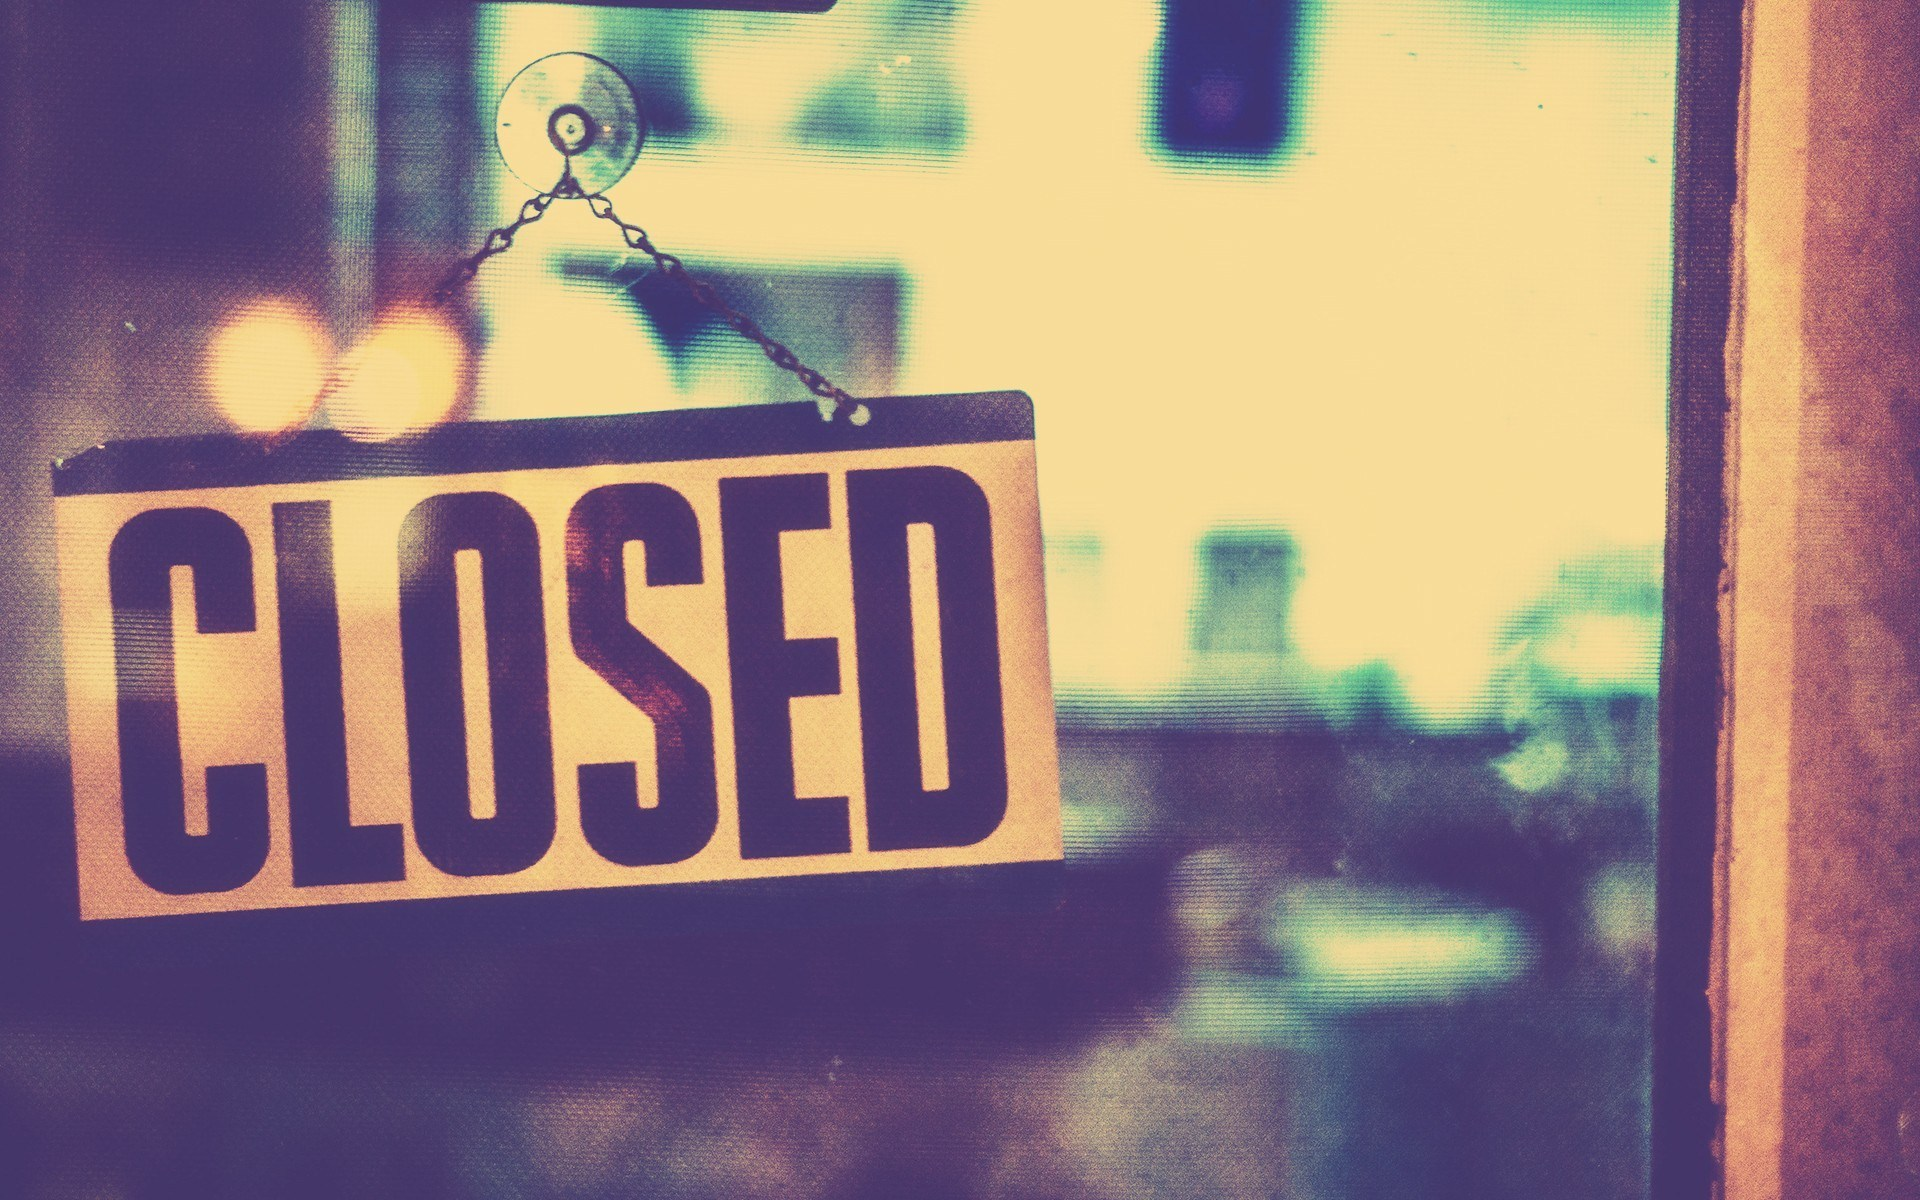 173 Independent Abortion Clinics Have Closed Since 2012, Saving More Babies from Abortion